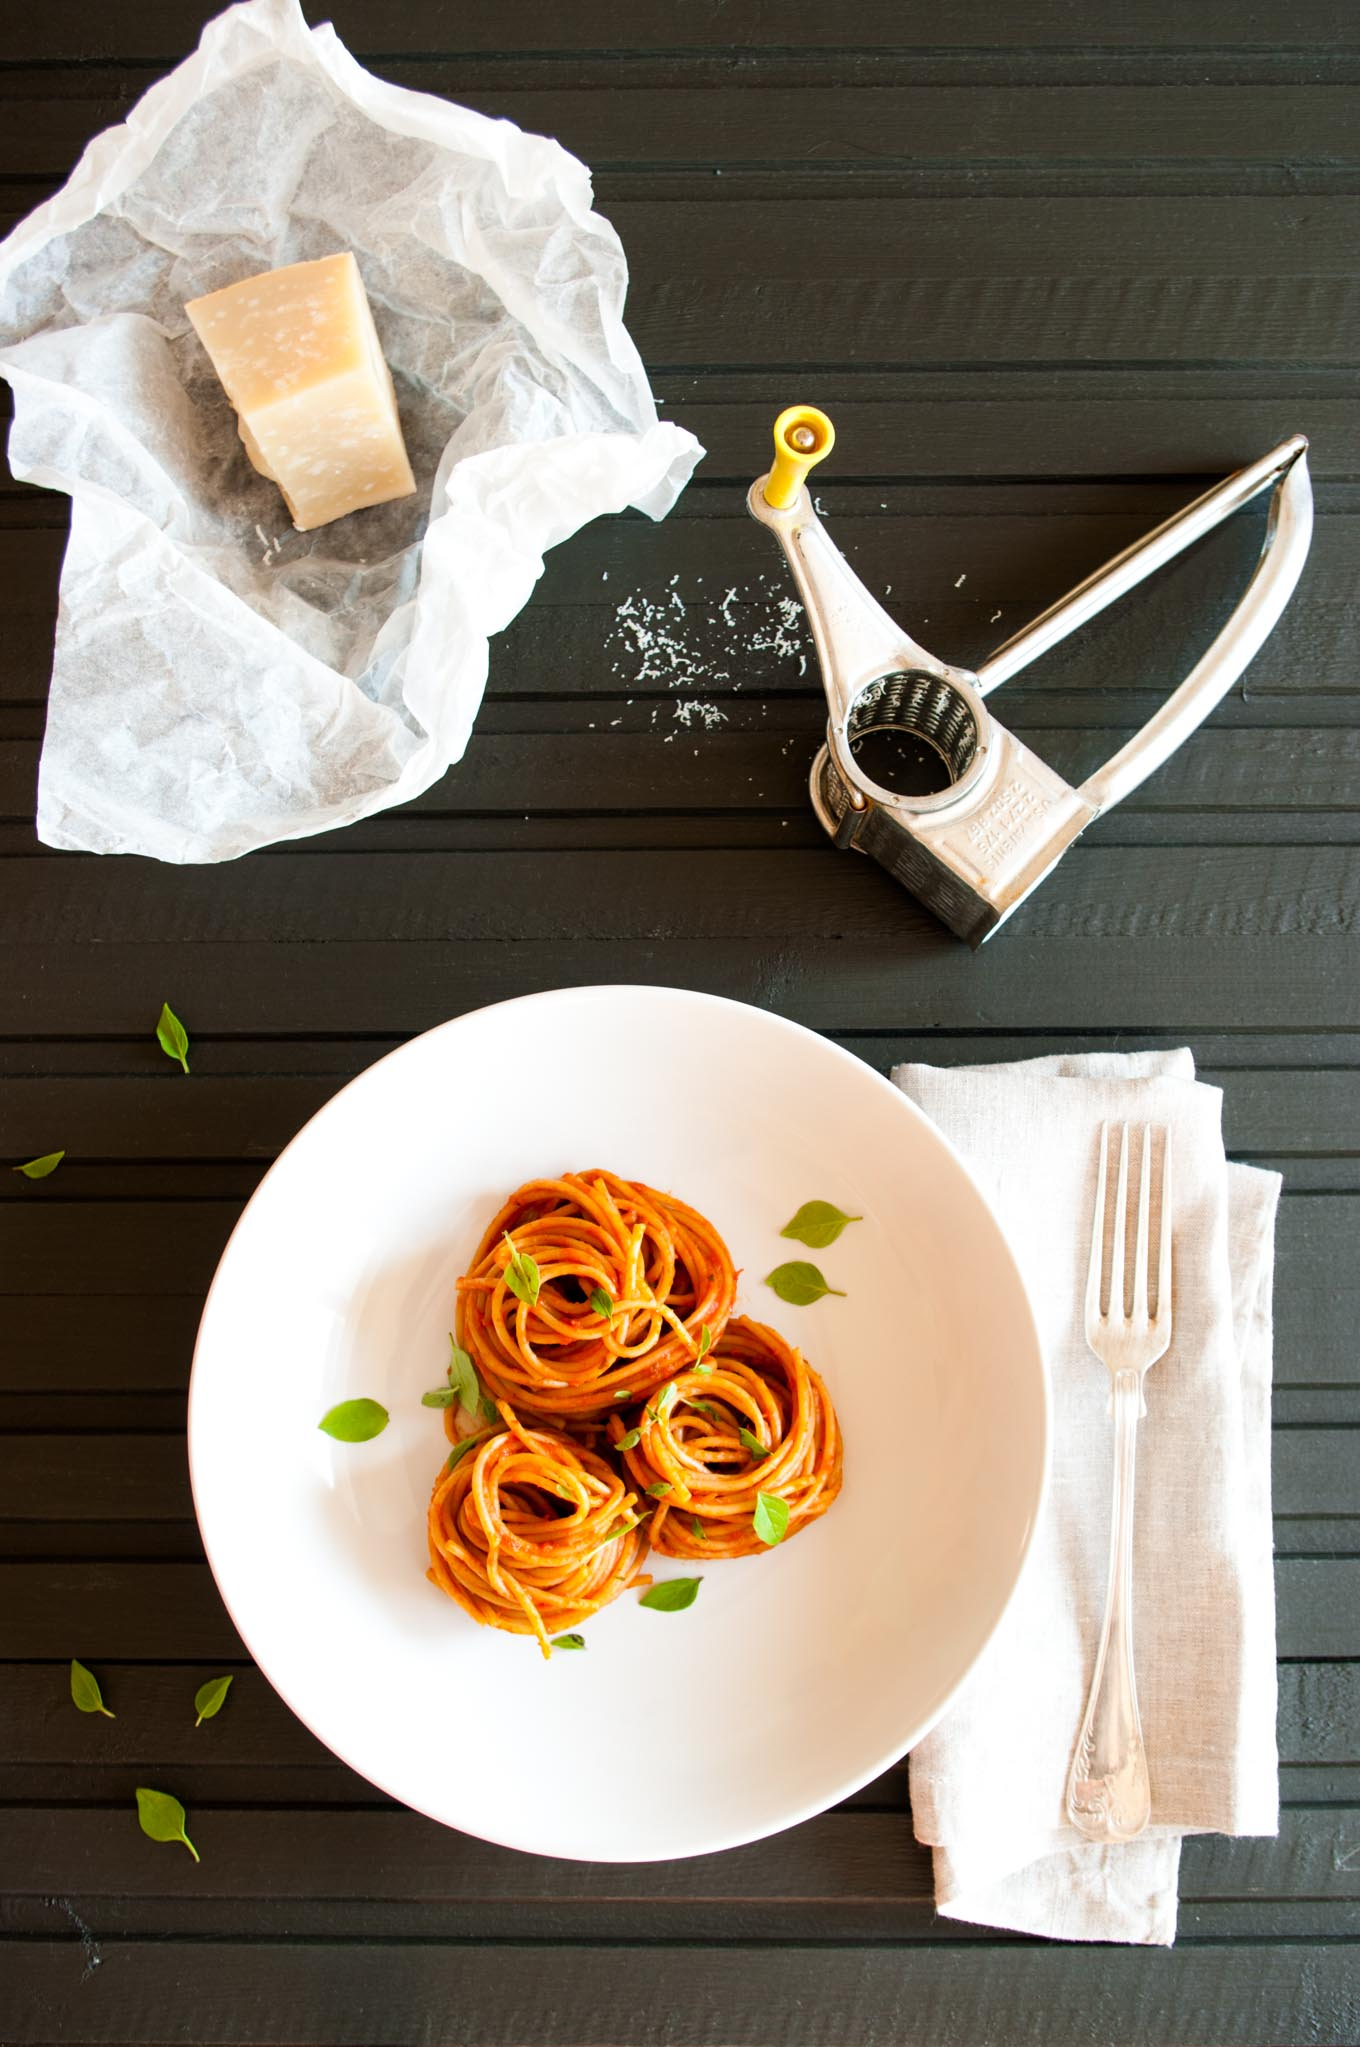 Marcella Hazan's Tomato Sauce – This classic Italian tomato sauce recipe for pasta comes from the legendary Marcella Hazan. Flavoured with butter and red onion, it is simple, requires minimal preparation and tastes fantastic. Excellent with the hearty flavours of whole wheat pasta. By @deliciouscratch | deliciousfromscratch.com